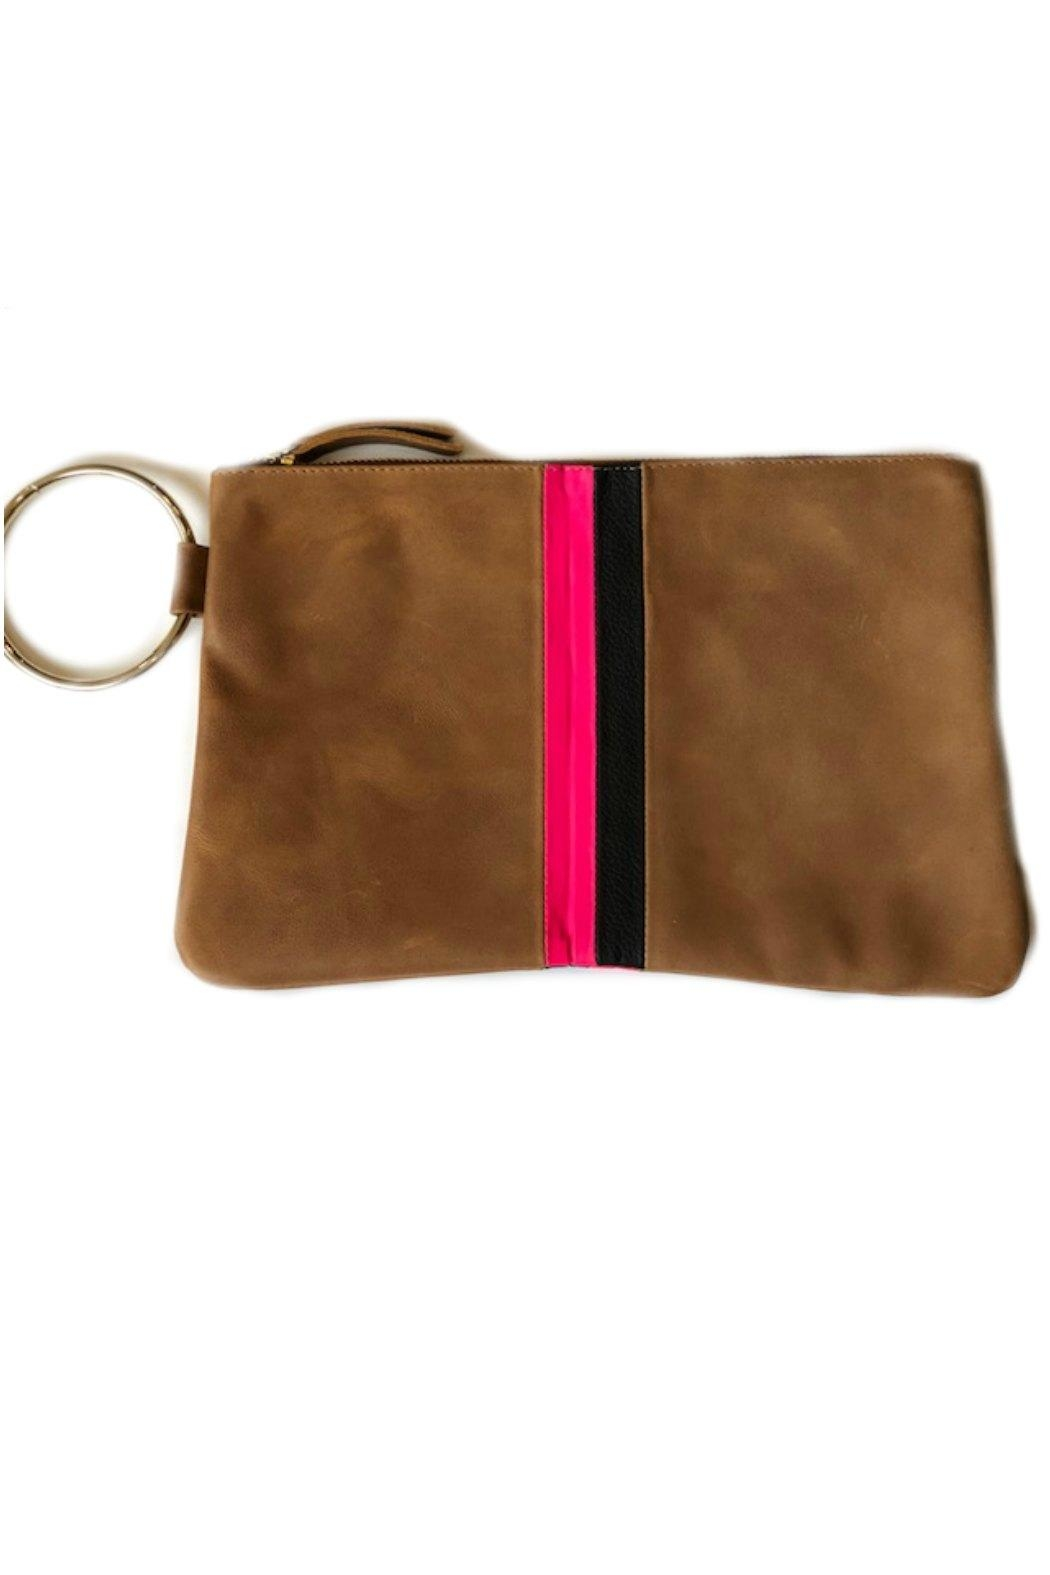 Positive Elements Gavi Leather Wristlet - Front Cropped Image